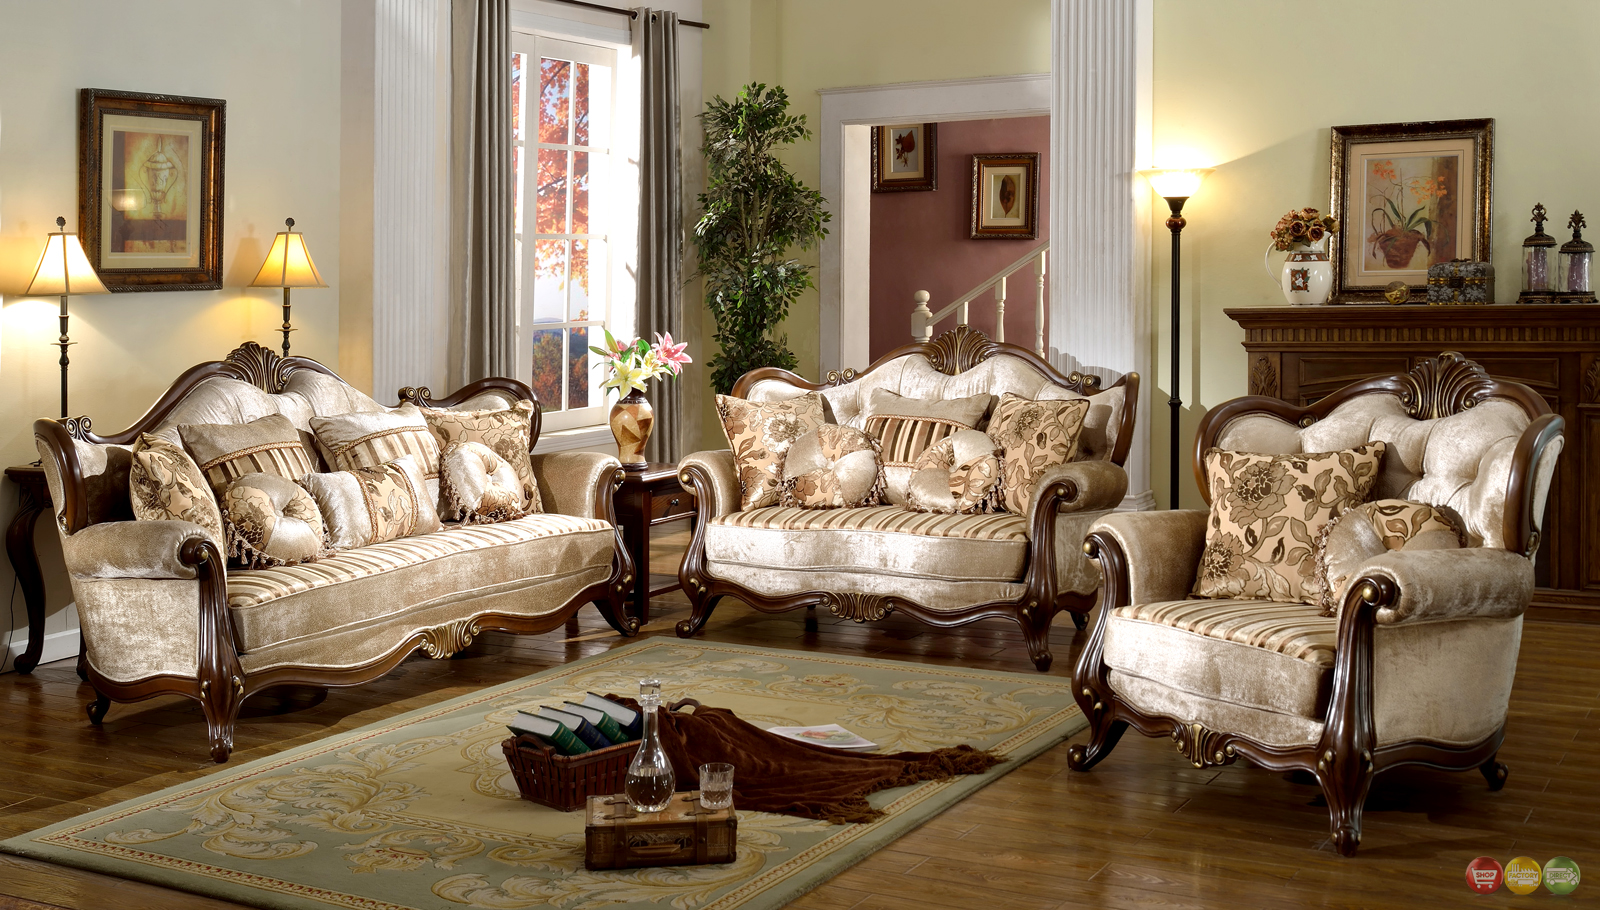 French Provincial Formal Antique Style Living Room: living room furniture images